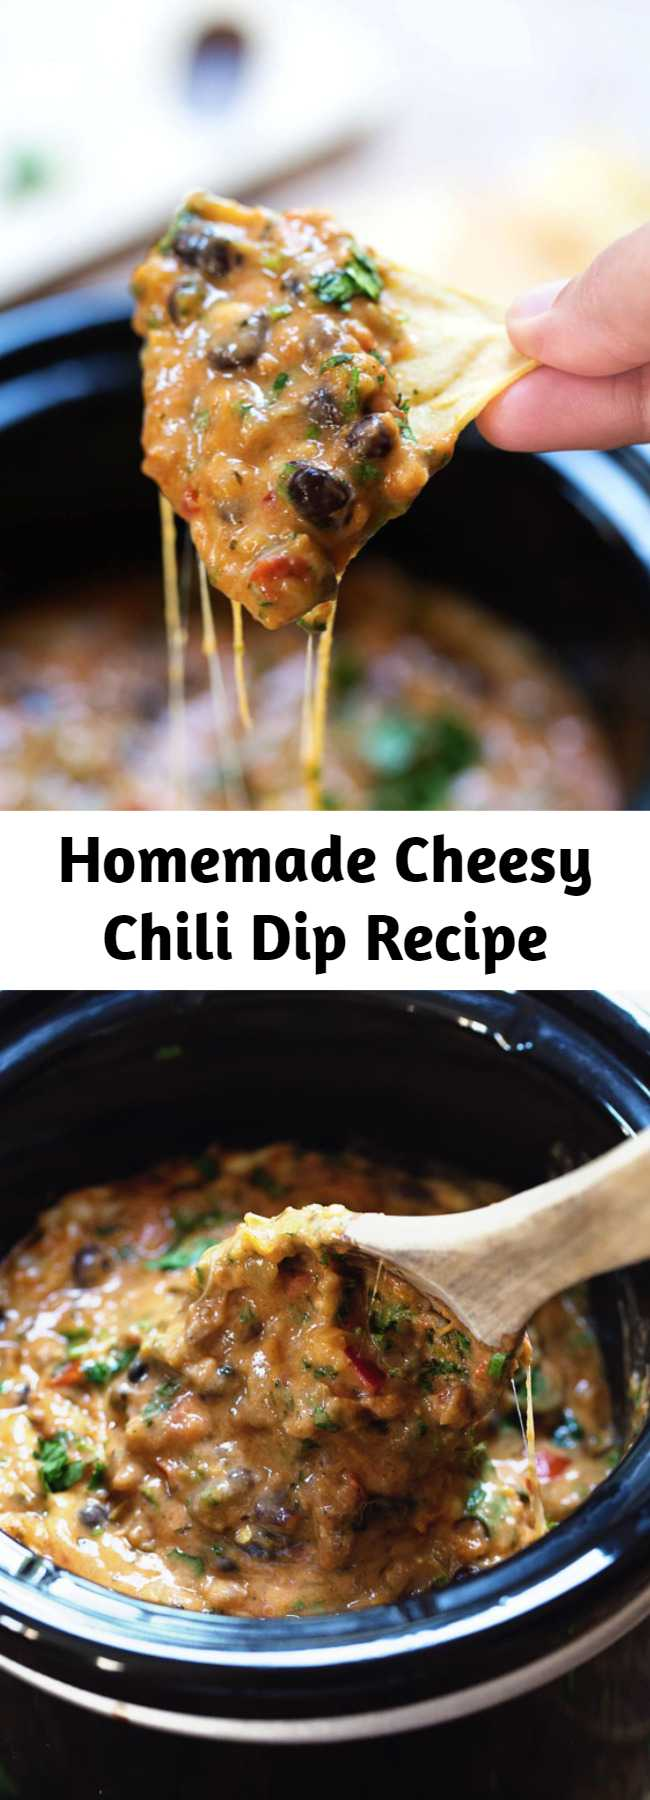 Homemade Cheesy Chili Dip Recipe - This Homemade Cheesy Chili Dip is made without the processed cheese! Just homemade spicy chili and creamy cheese sauce. Deeeelish!